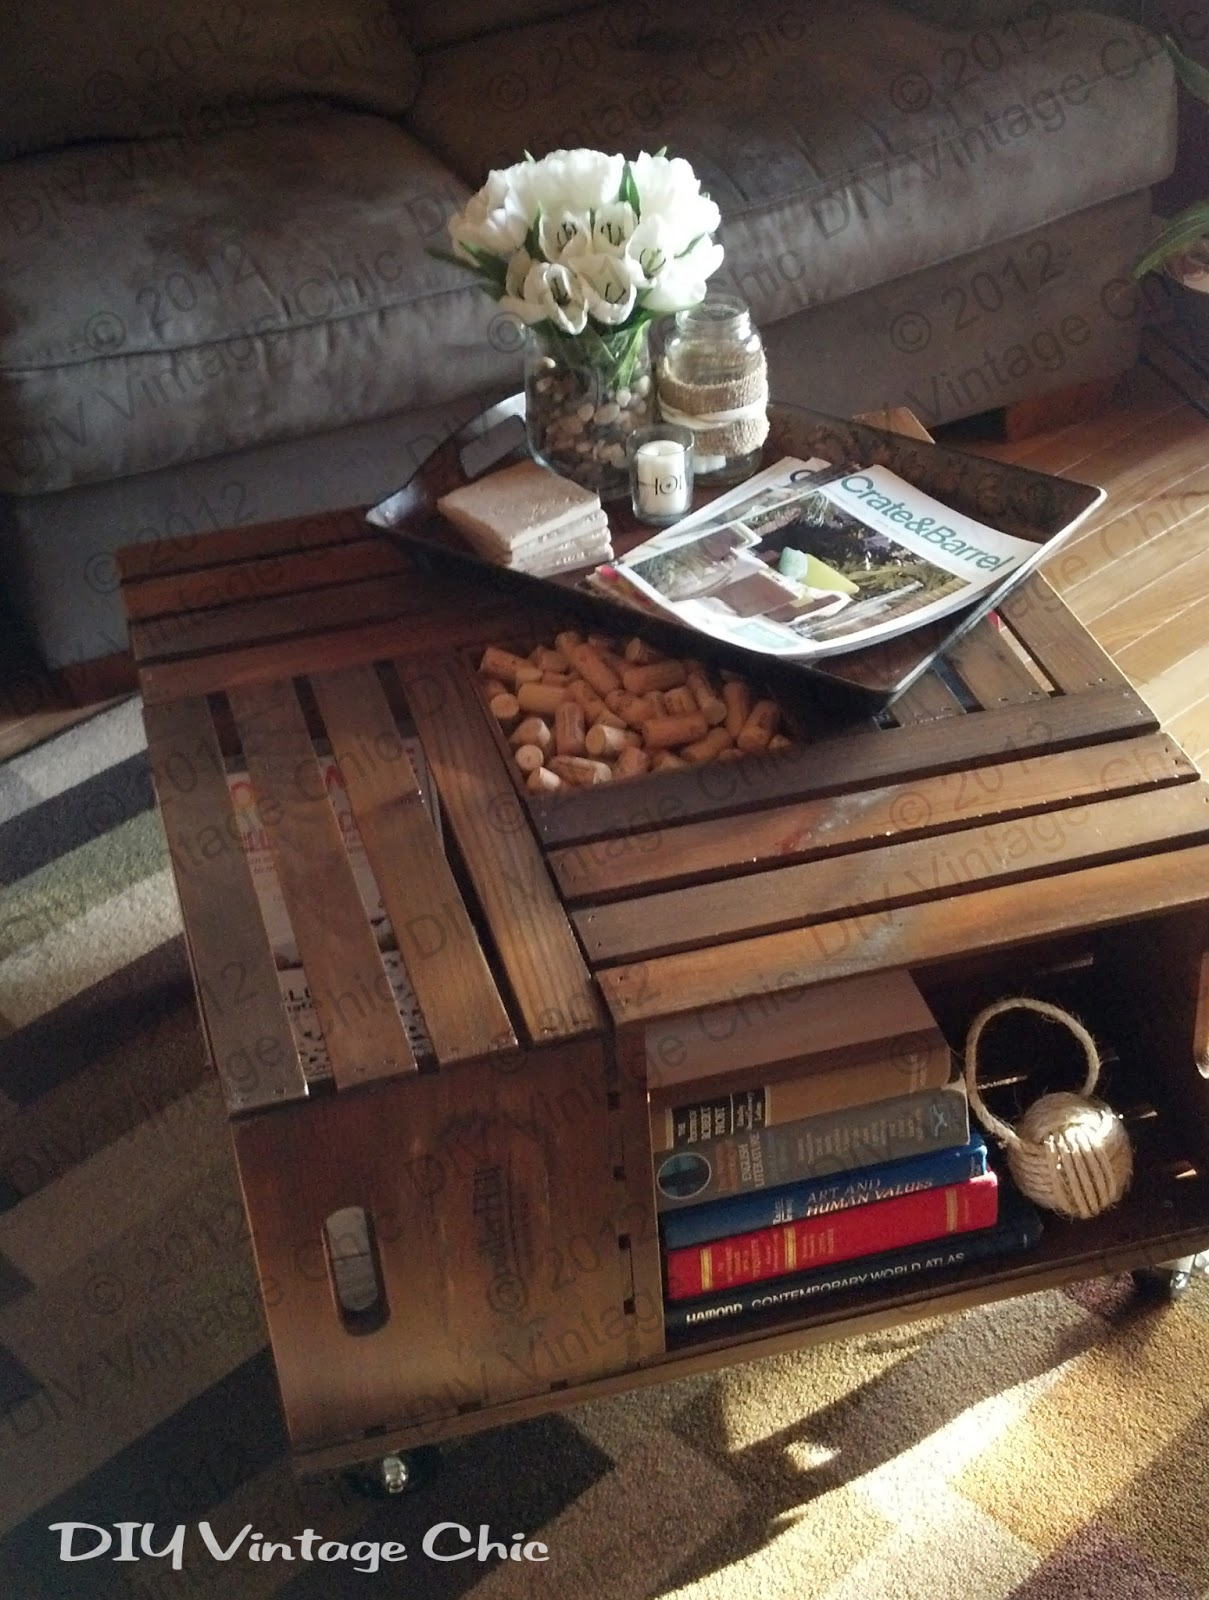 Diy vintage chic vintage wine crate coffee table a leg of our old coffee table is about to give out the reason why my kitchen table is where my laptop sits along with my printer usually partsmaterials solutioingenieria